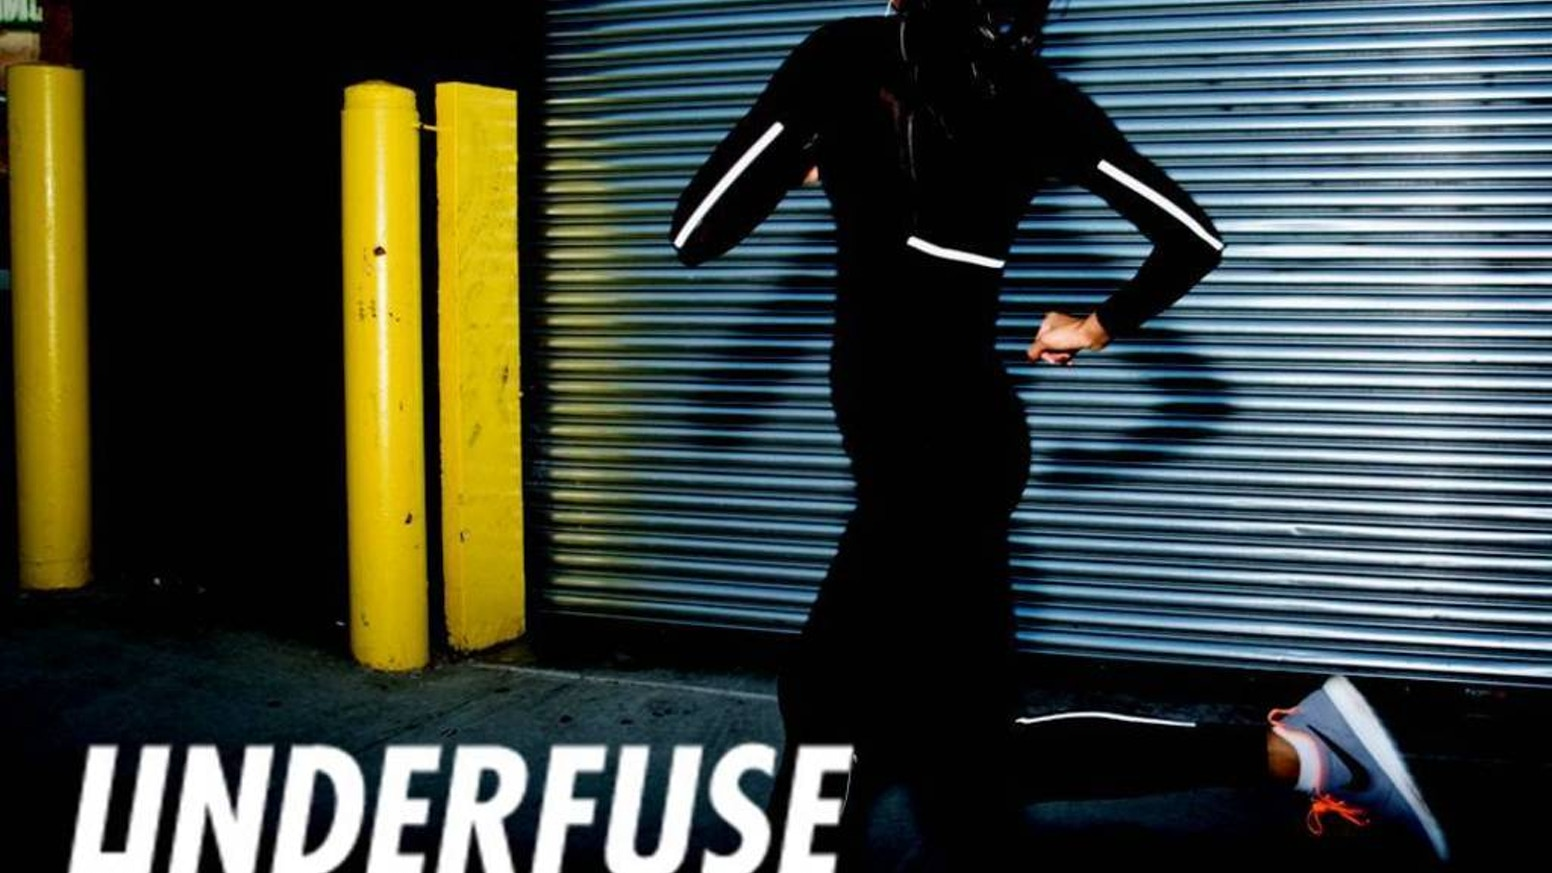 Make clothing highly visible at night in just 30 seconds. Stay visible. Stay safe.